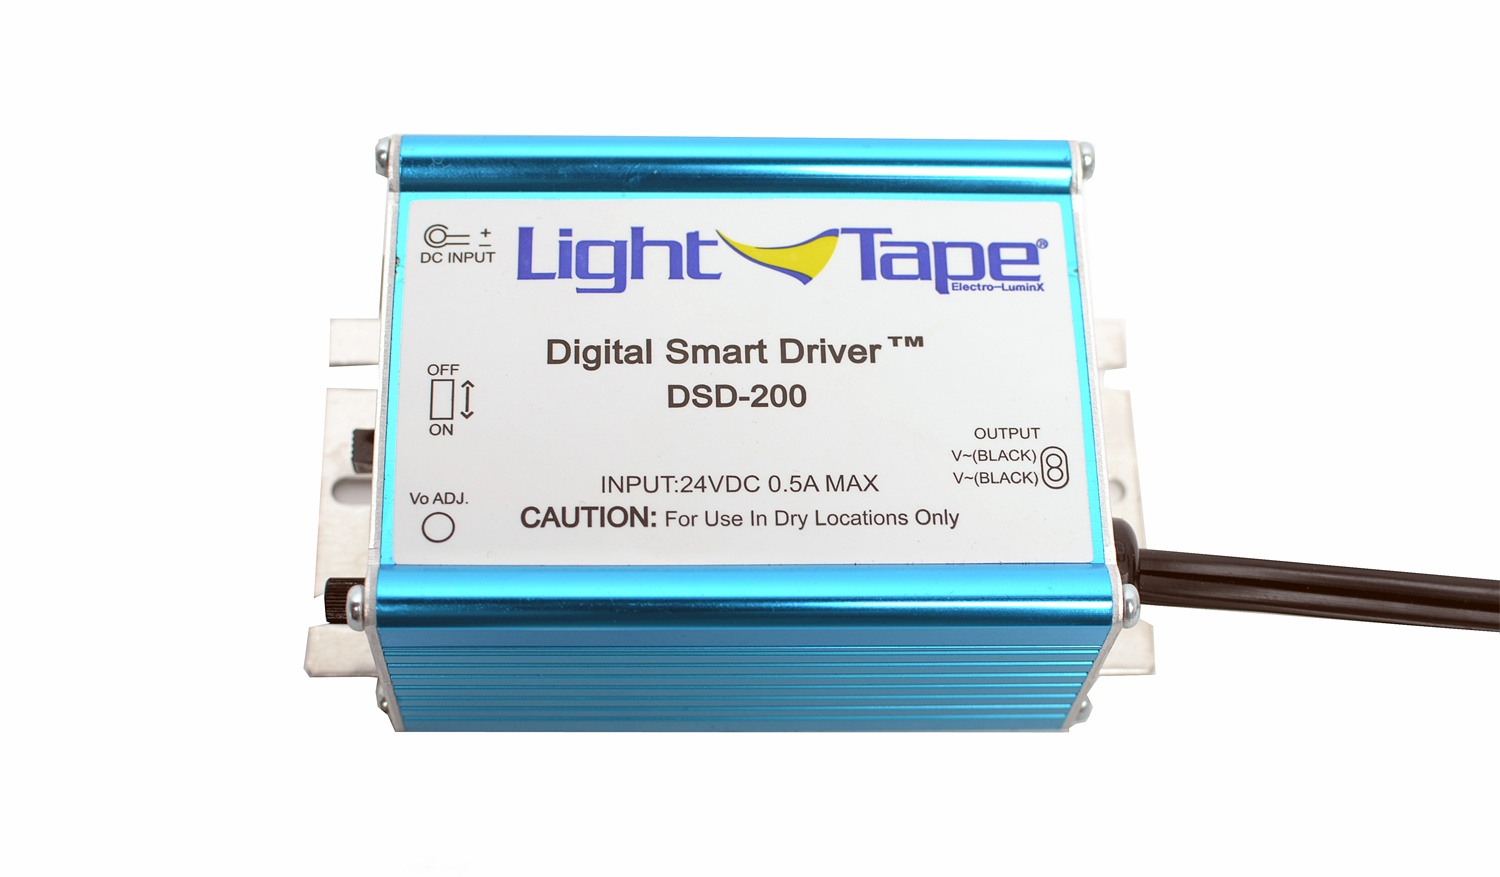 Model DSD-200  Illuminated Area:5-250 sq. in. Input Current:1-90 mA Input Voltage: 120 or 240 VAC Input Frequency: 50/60 Hz Output Voltage: 200-300 V Output Frequency: 500-800 Hz